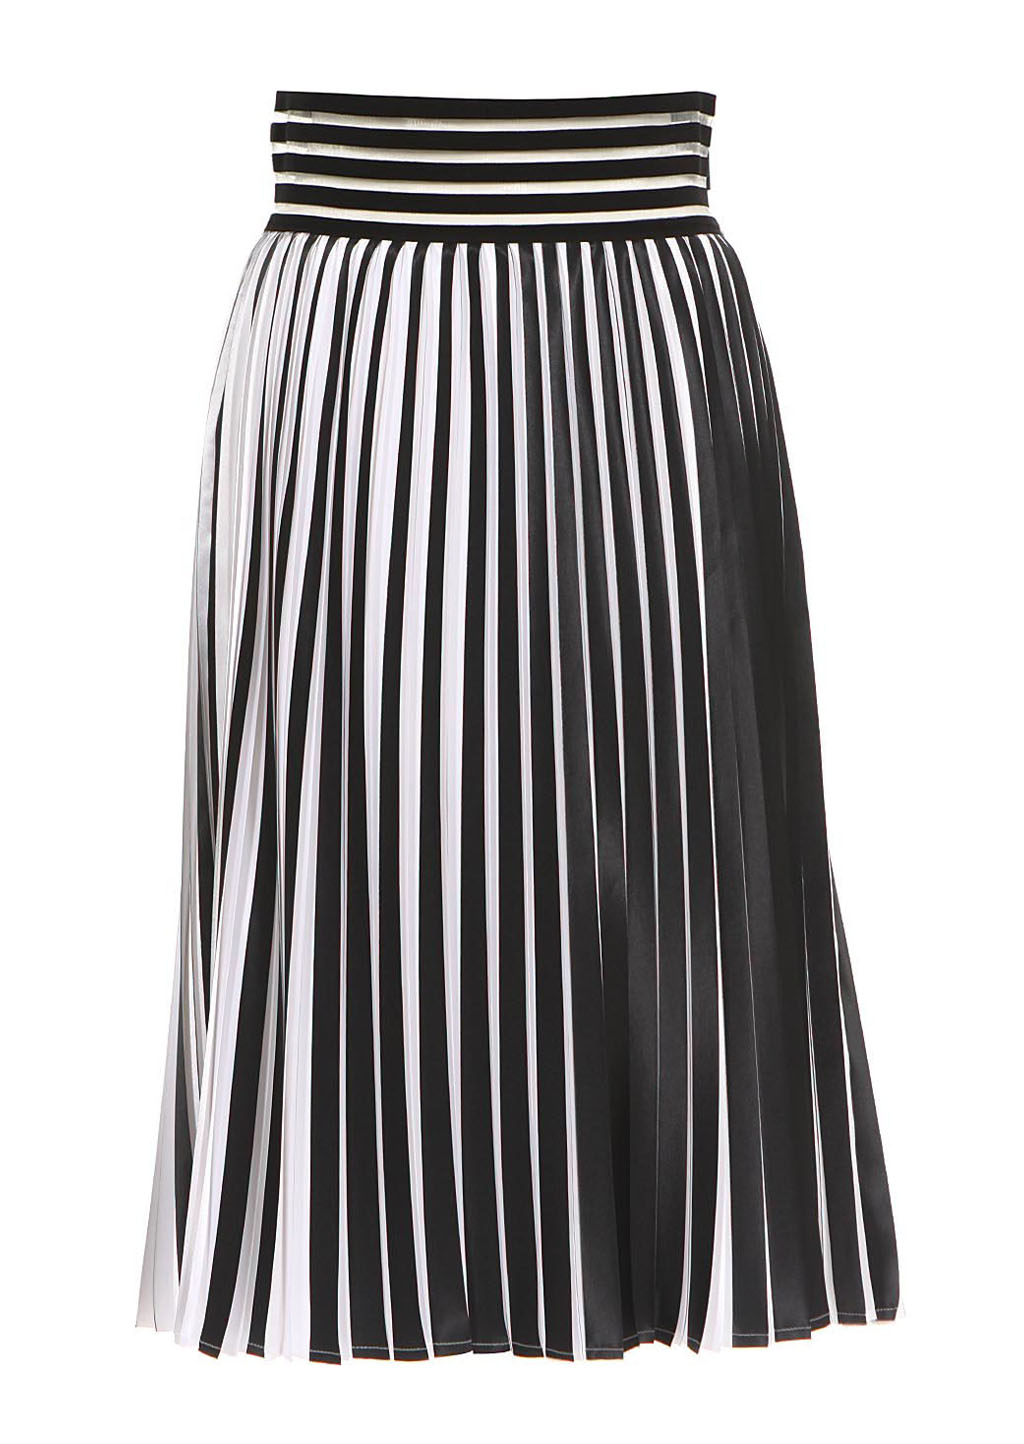 christopher black and white pleated midi skirt in